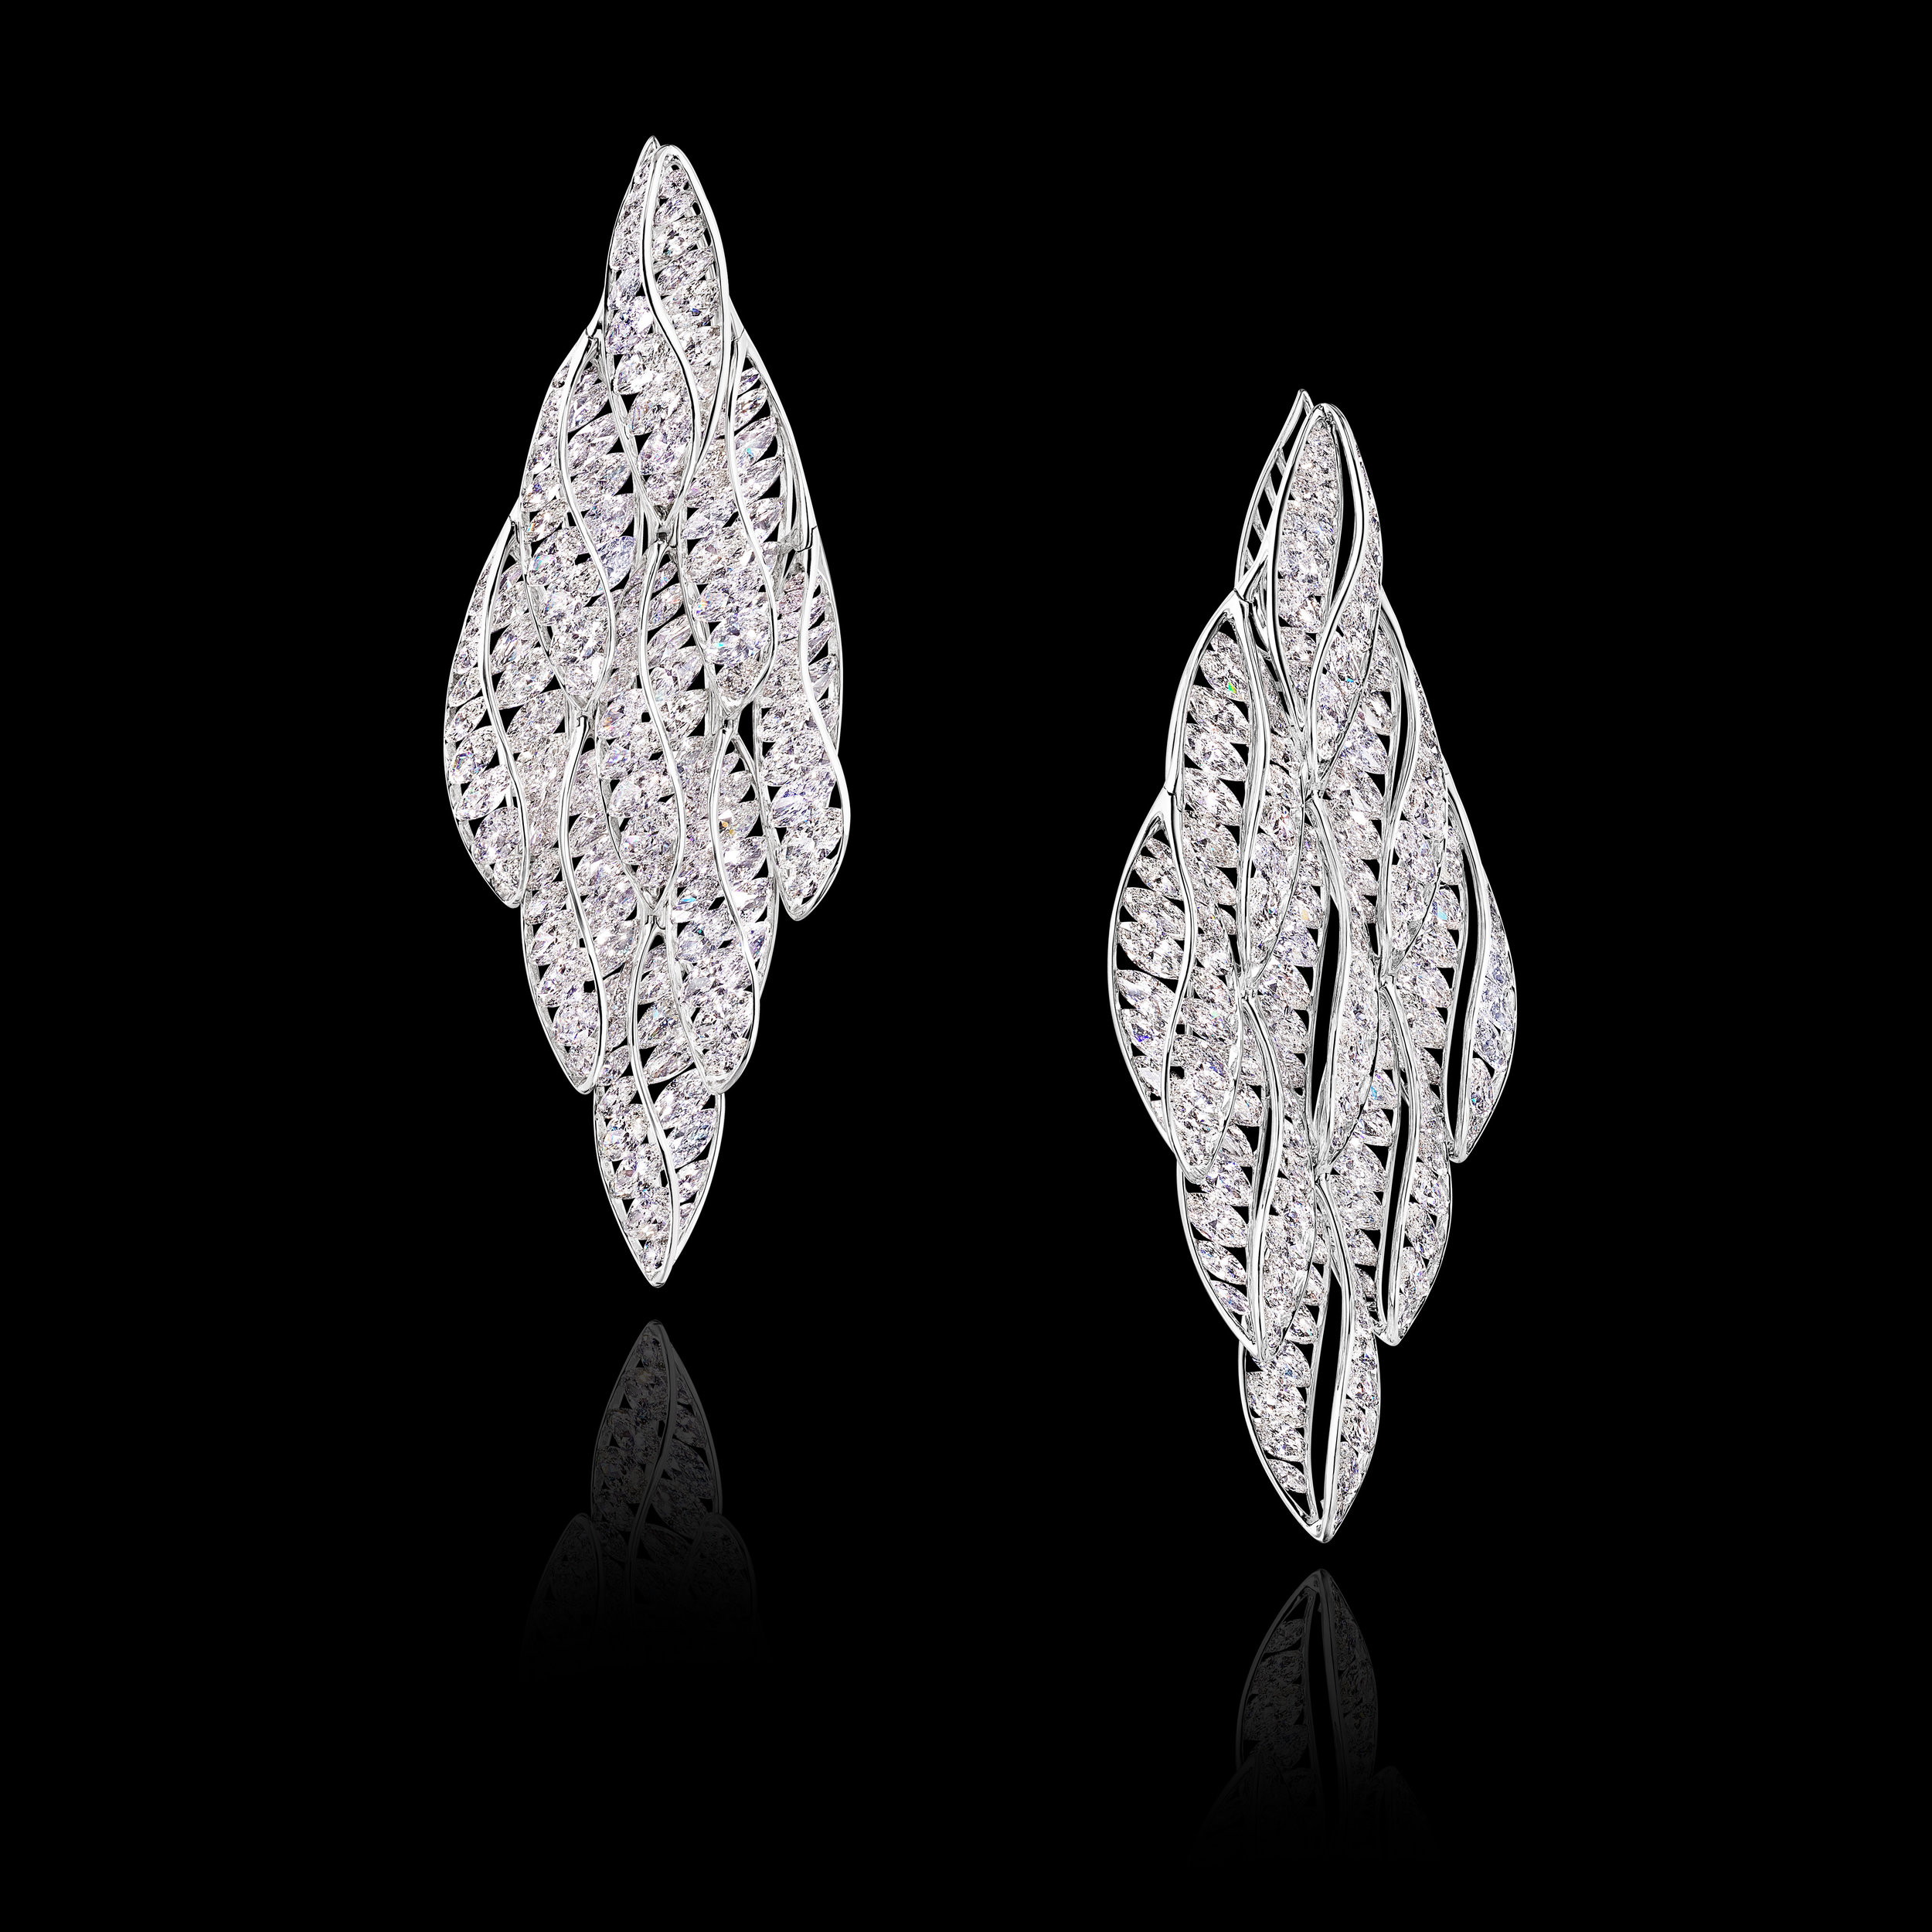 DIAMOND CHANDELLIER EARRINGS